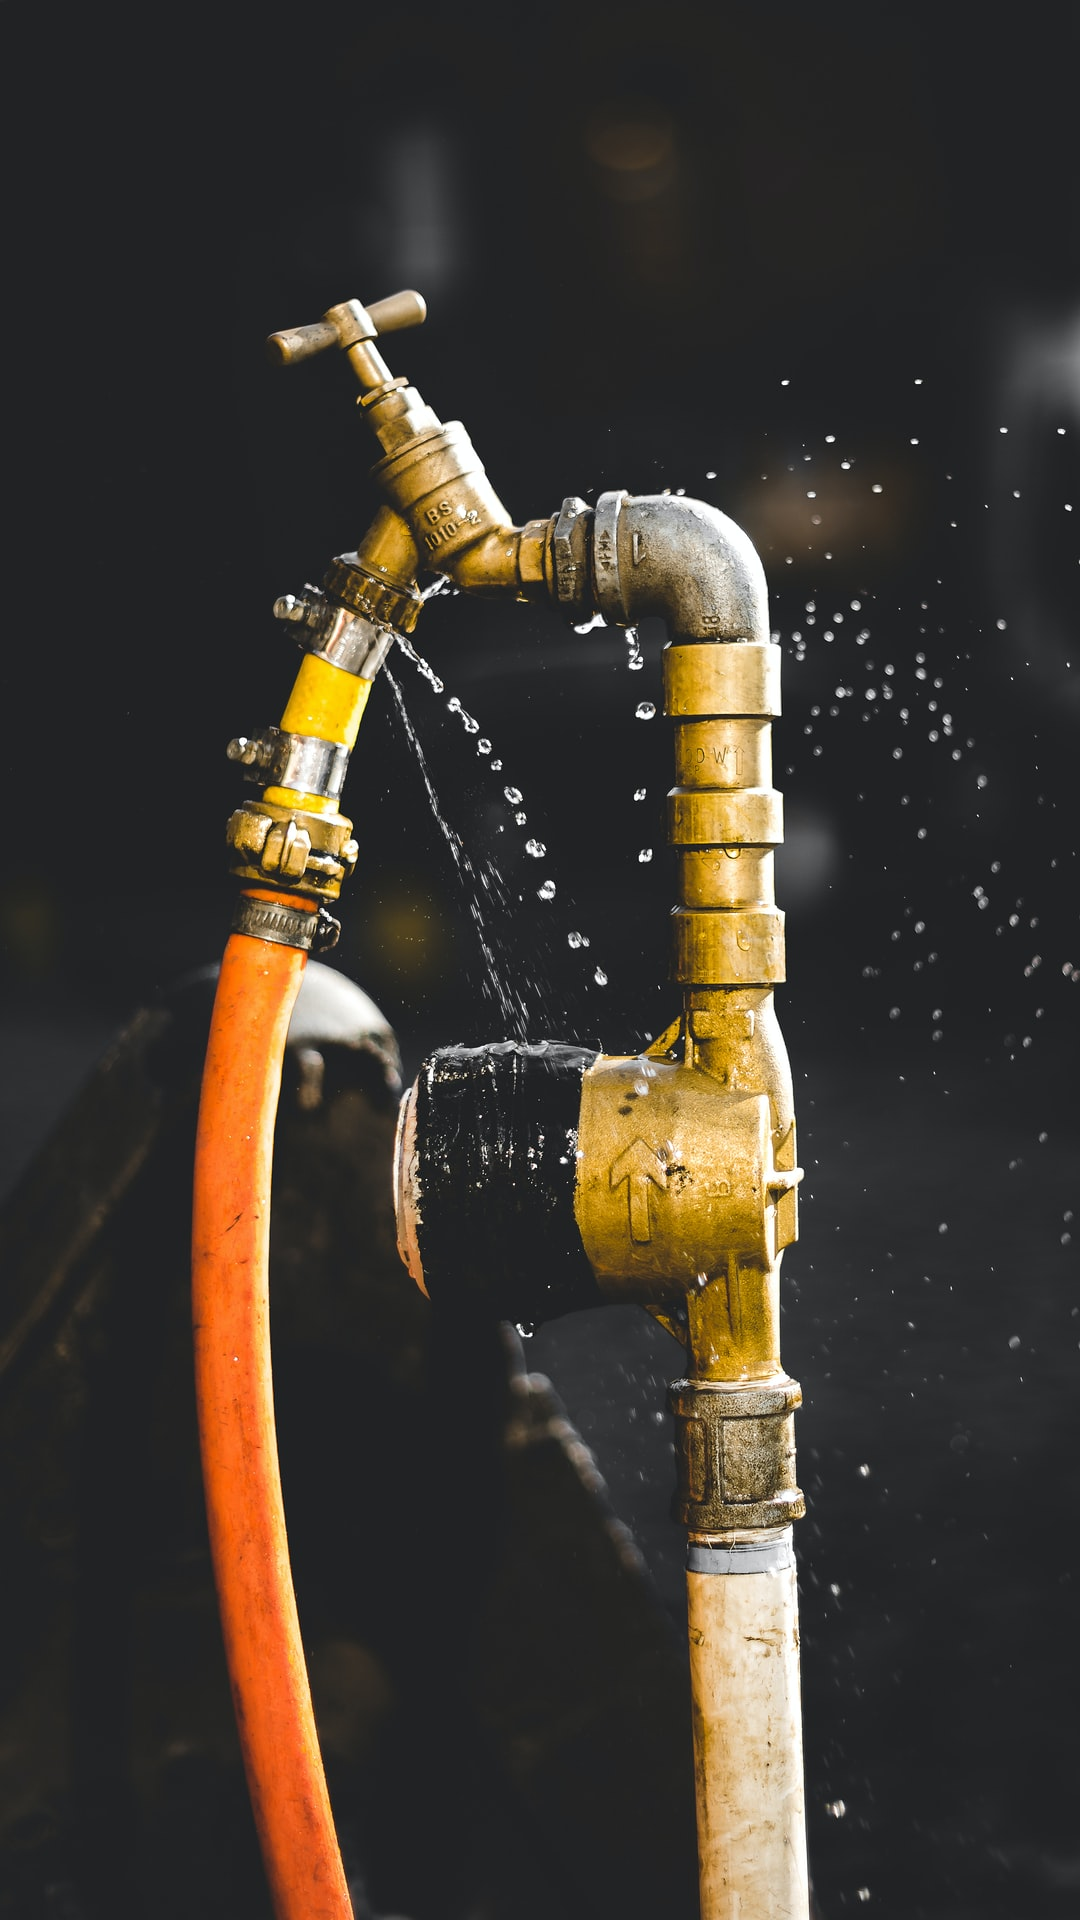 8 Tips To Help You Prevent Burst Pipes